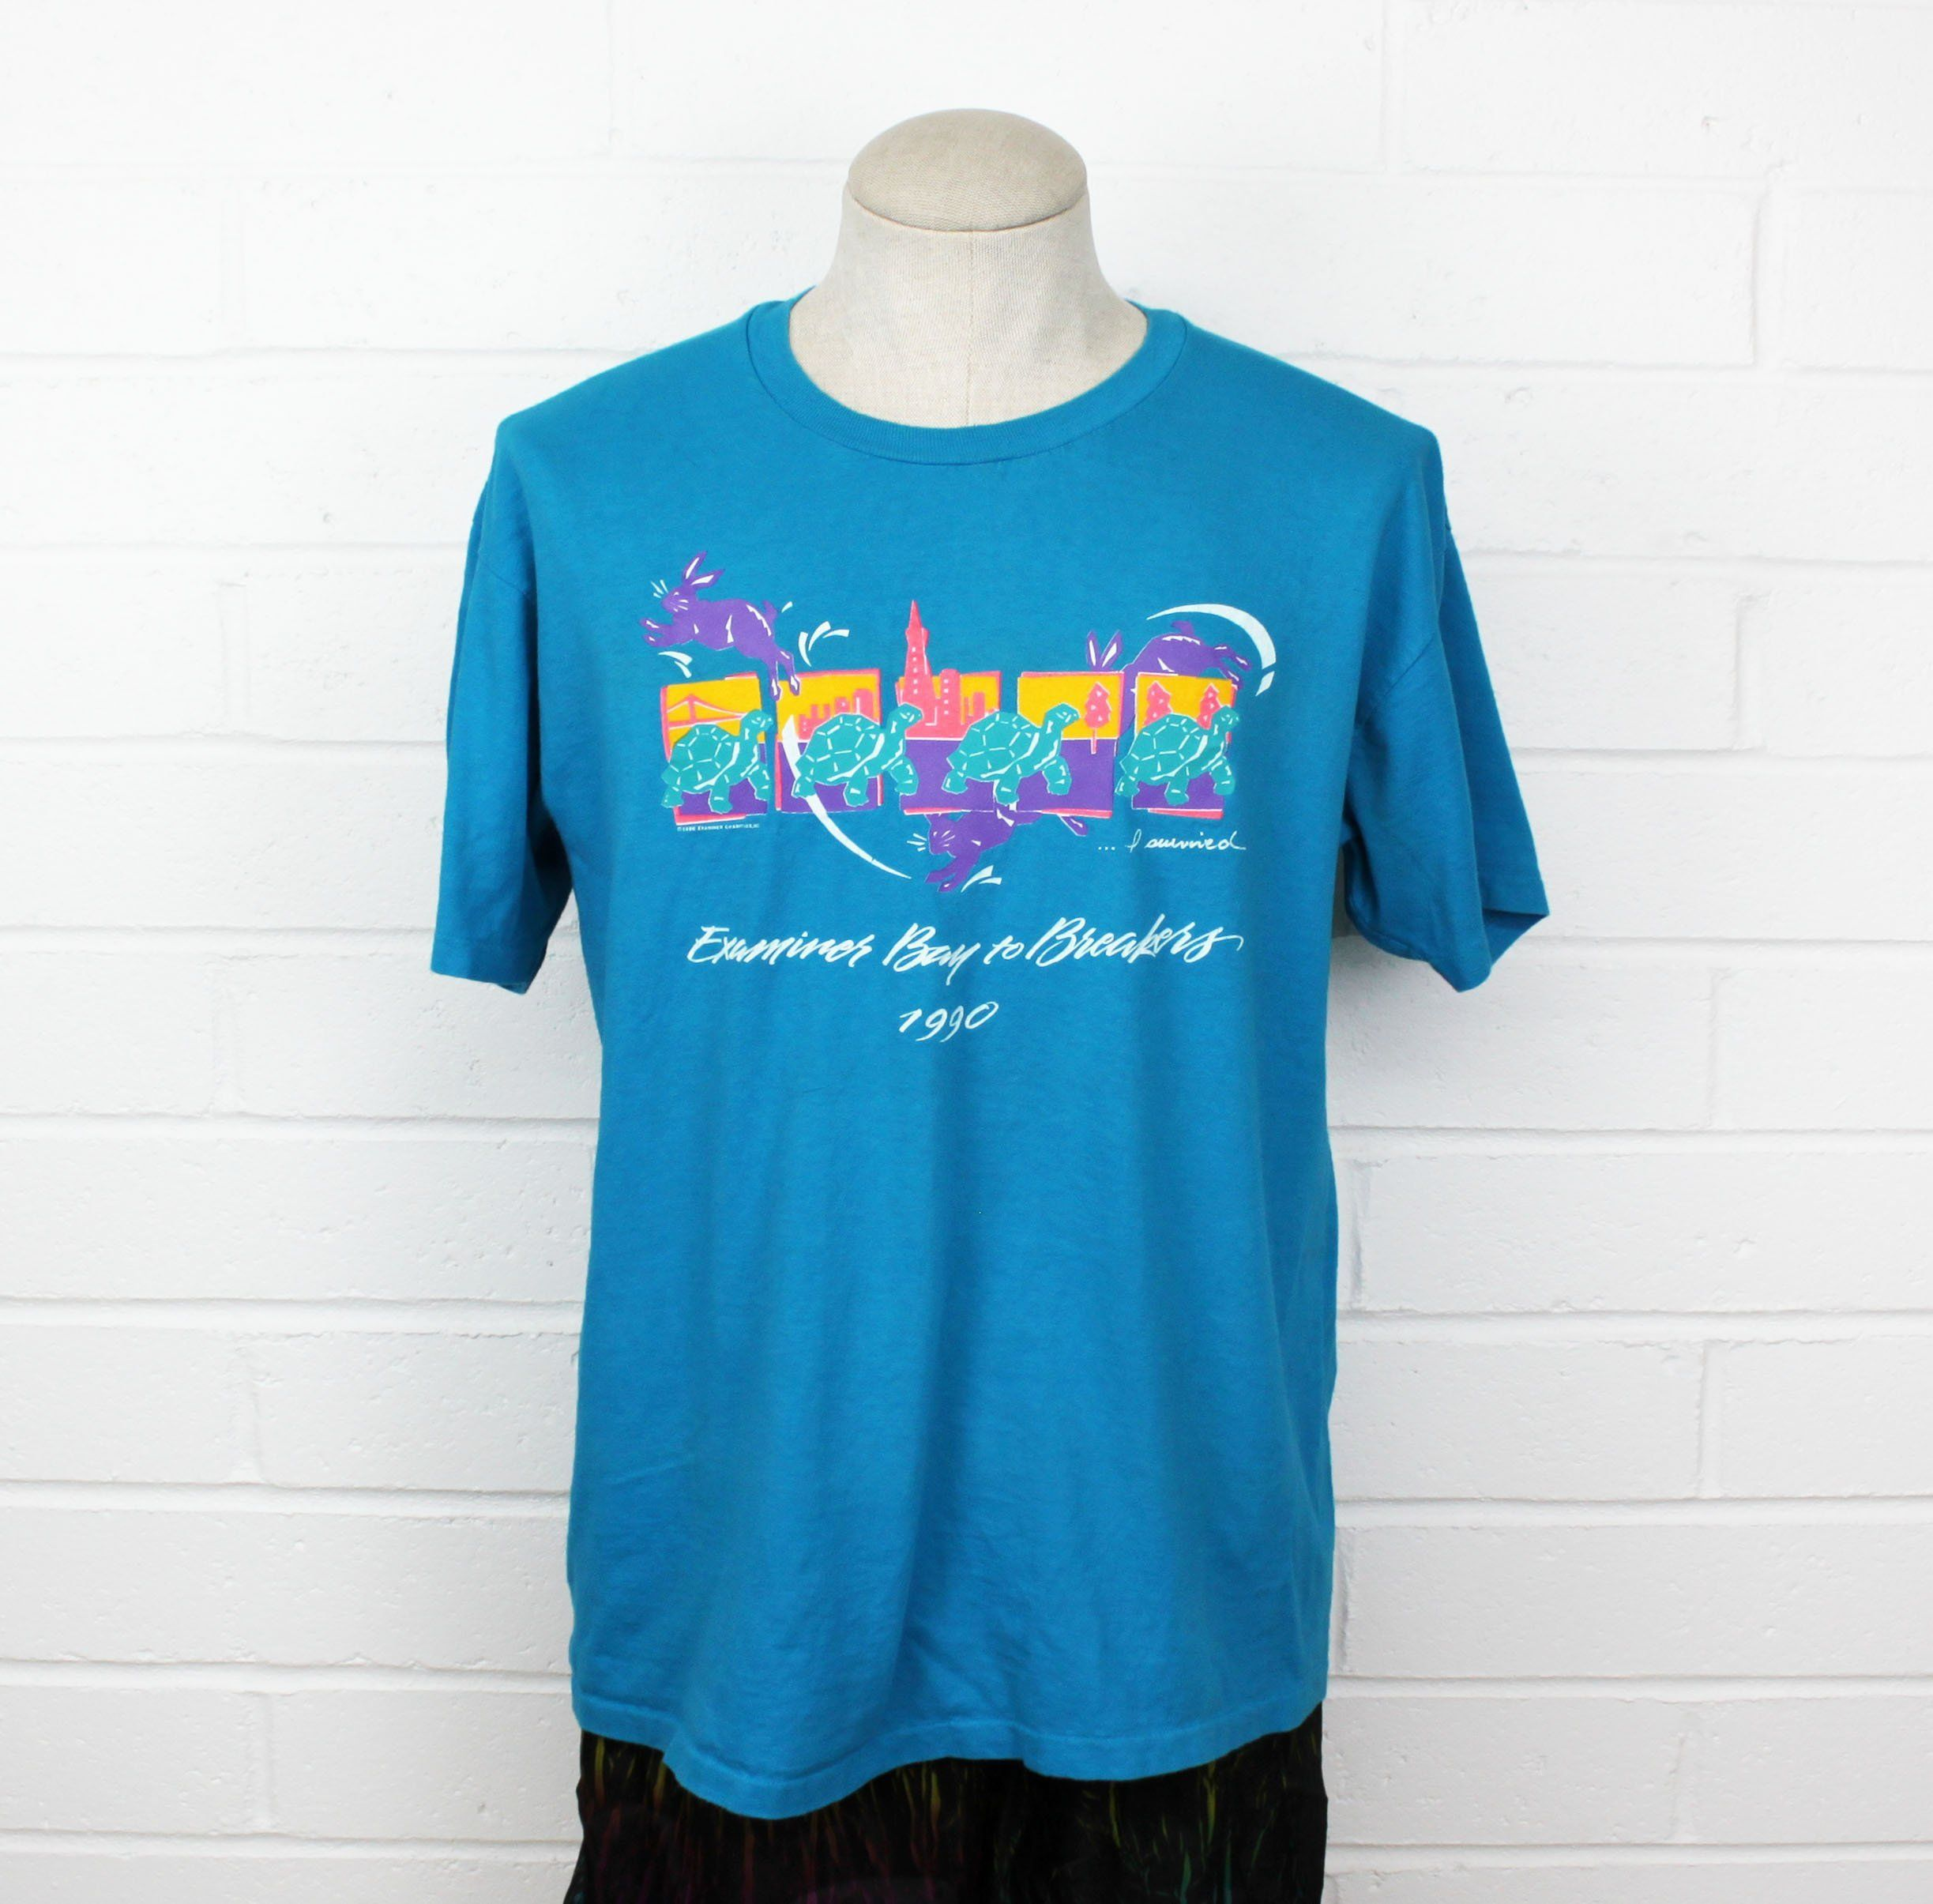 e5dcf620694ce Vintage 90s Marathon Running Shirt Large Bay to Breakers San Francisco  Turtles City I Survived Electric Blue Tee T Shirt by Nack4VintageShop on  Etsy